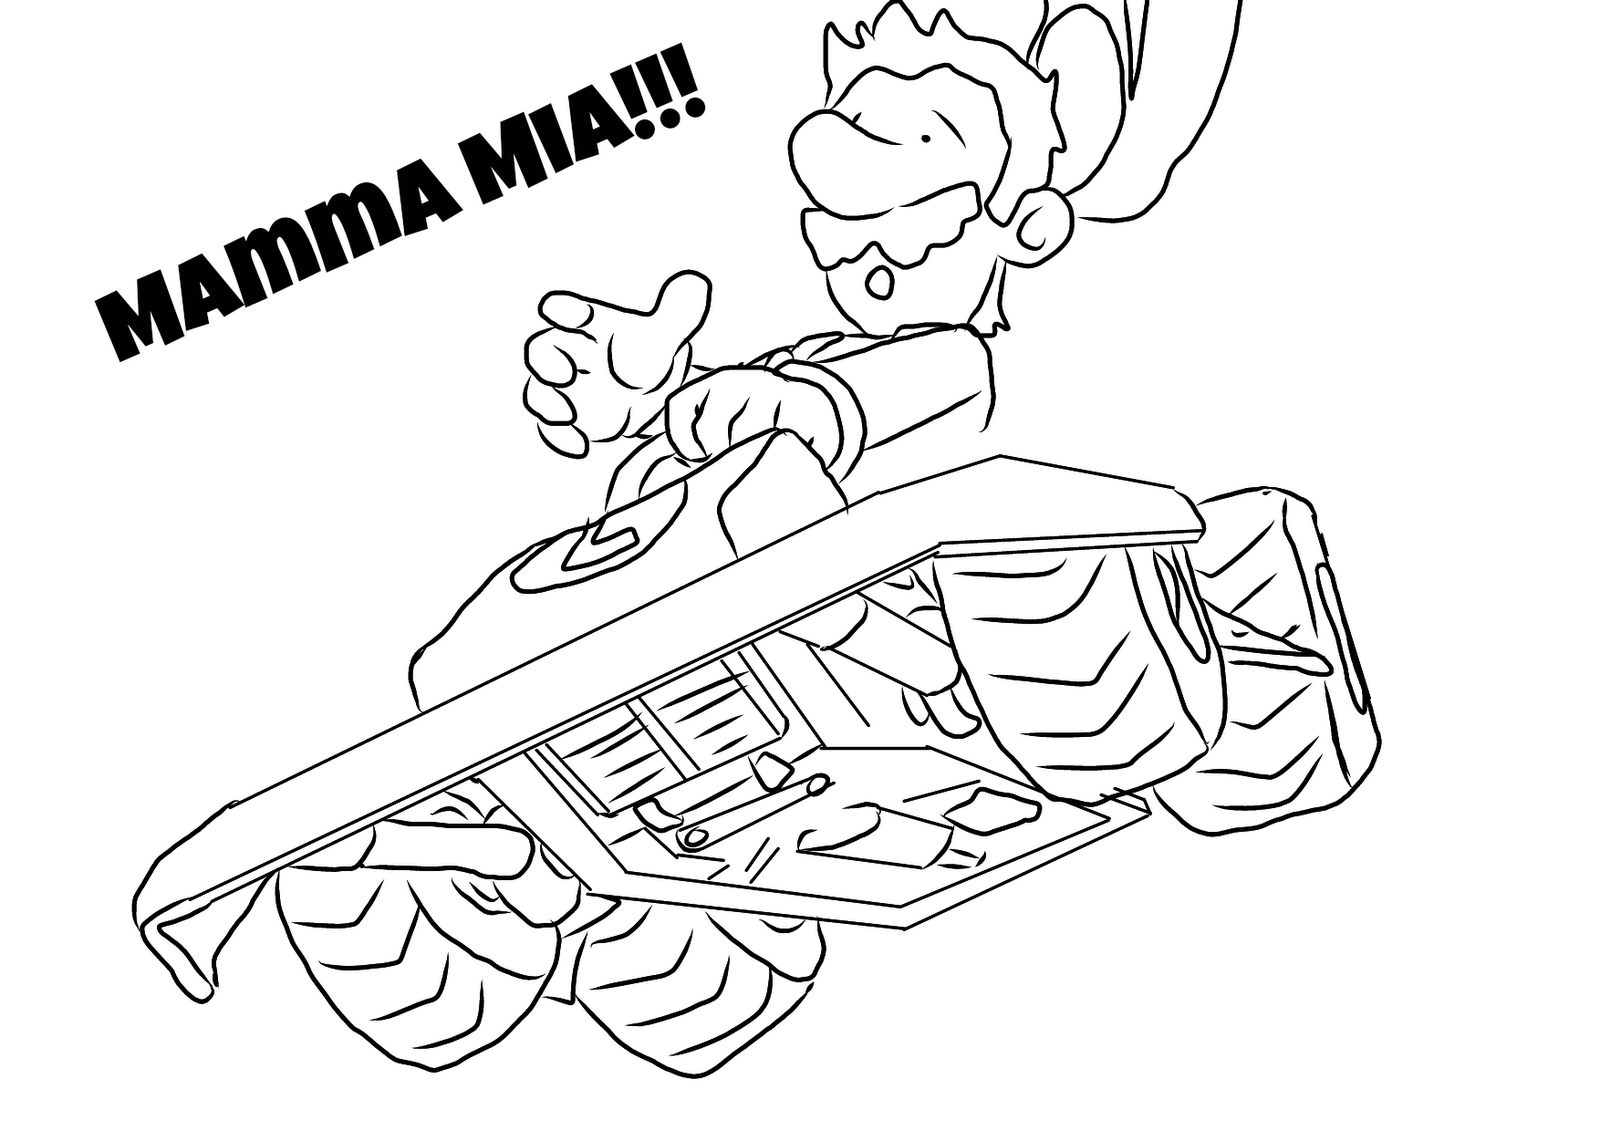 Free coloring pages of mario kart wii for Mario kart wii coloring pages